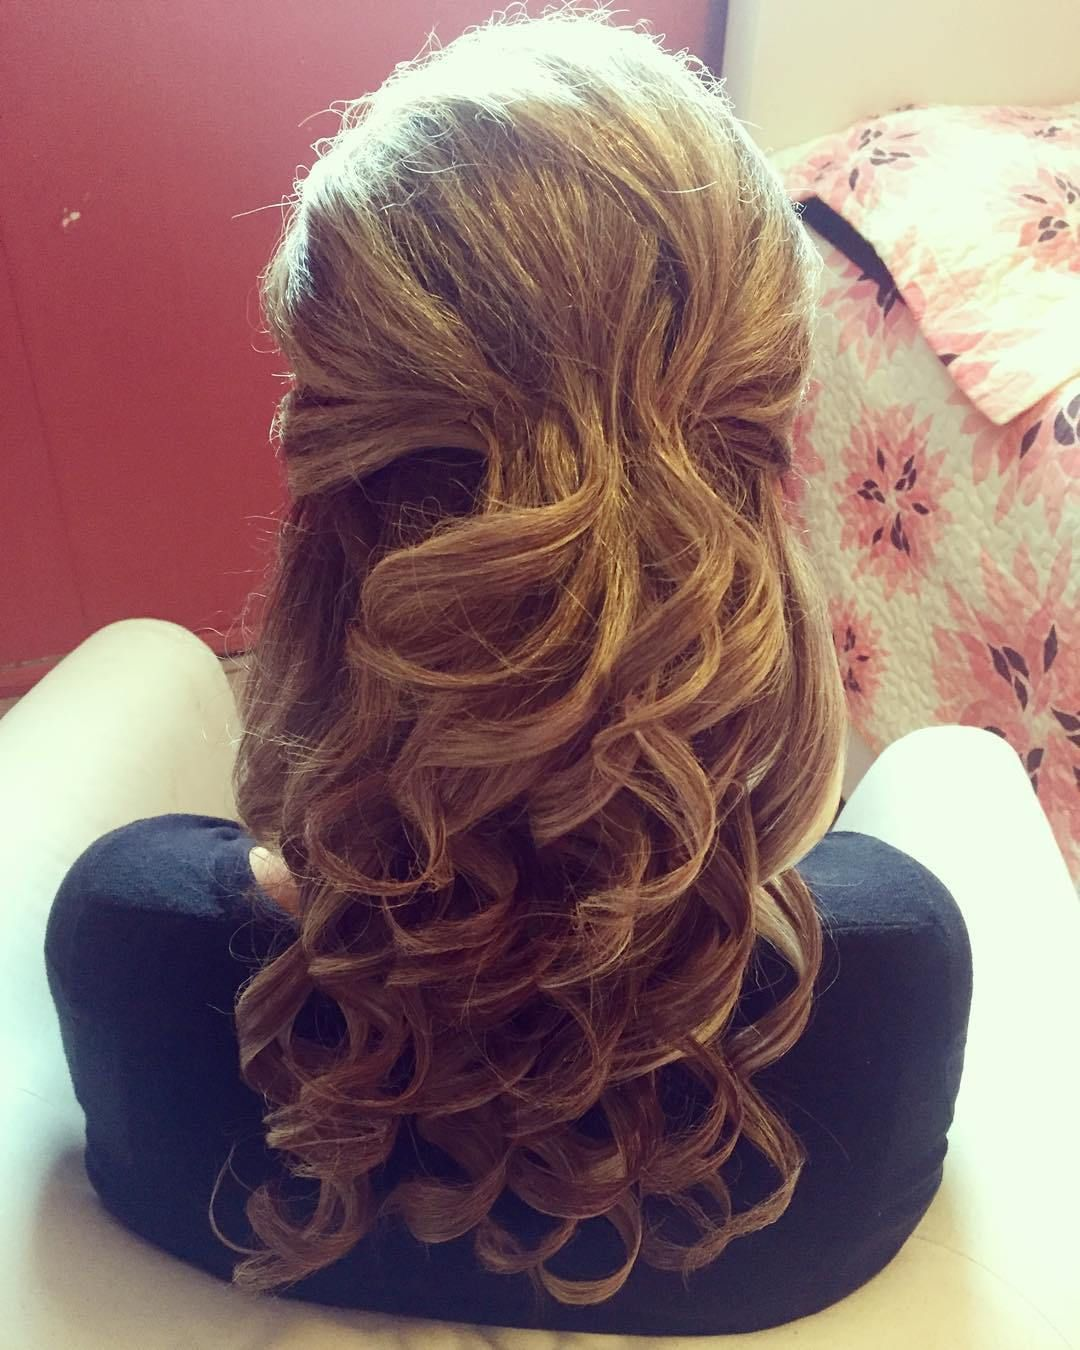 50 Ravishing Mother of the Bride Hairstyles | Long curly, Curly ...